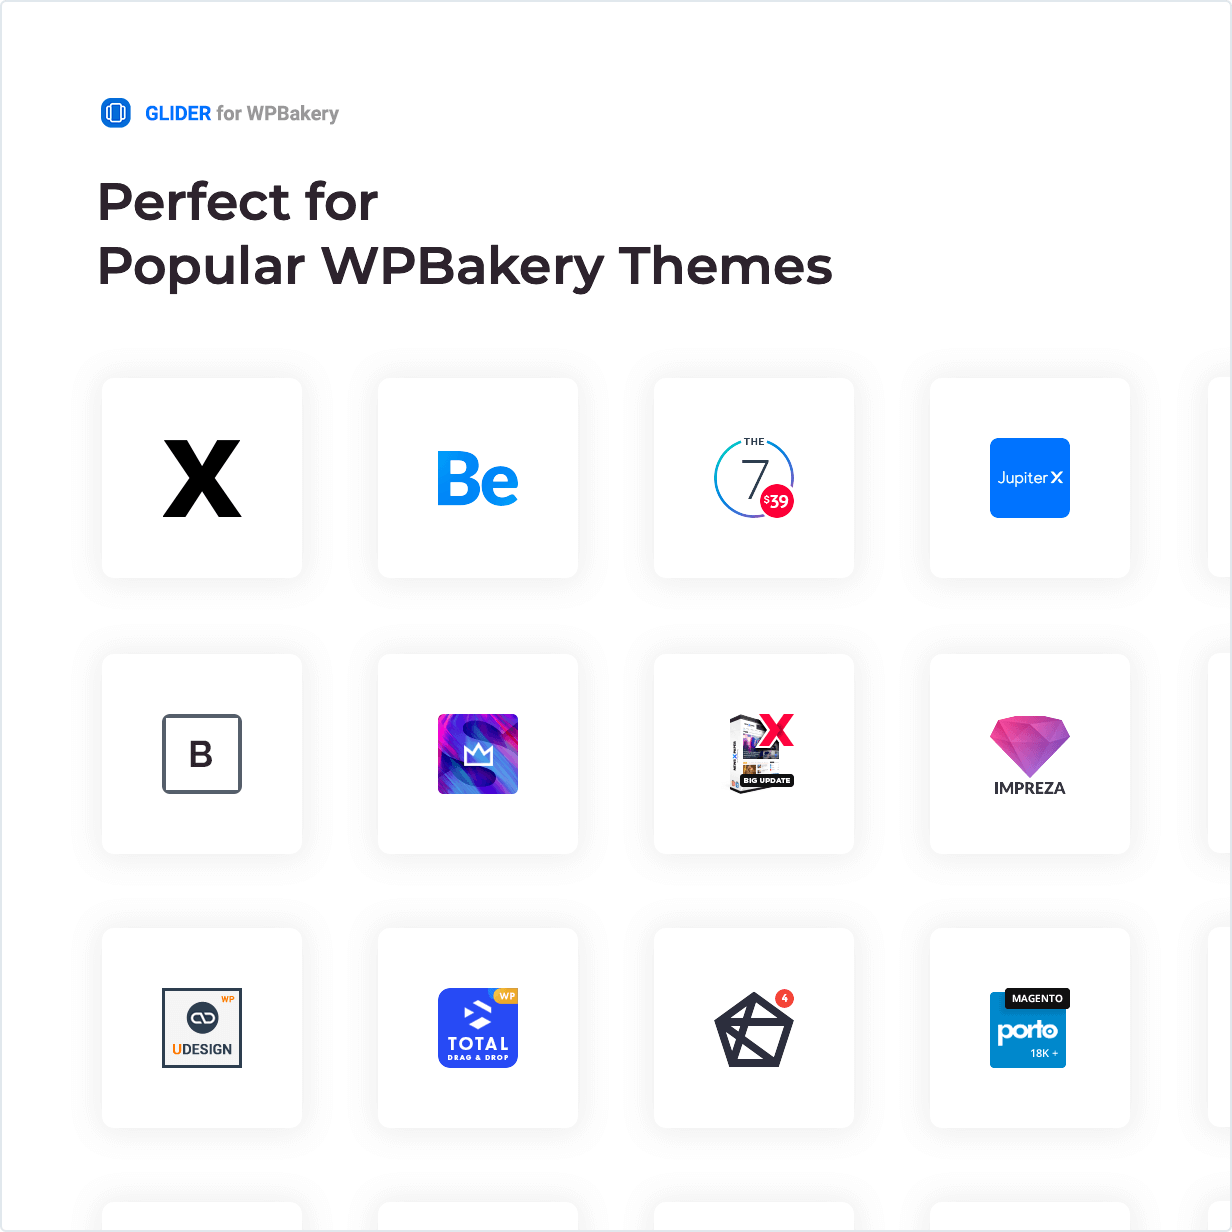 Perfect for Popular WPBakery Themes